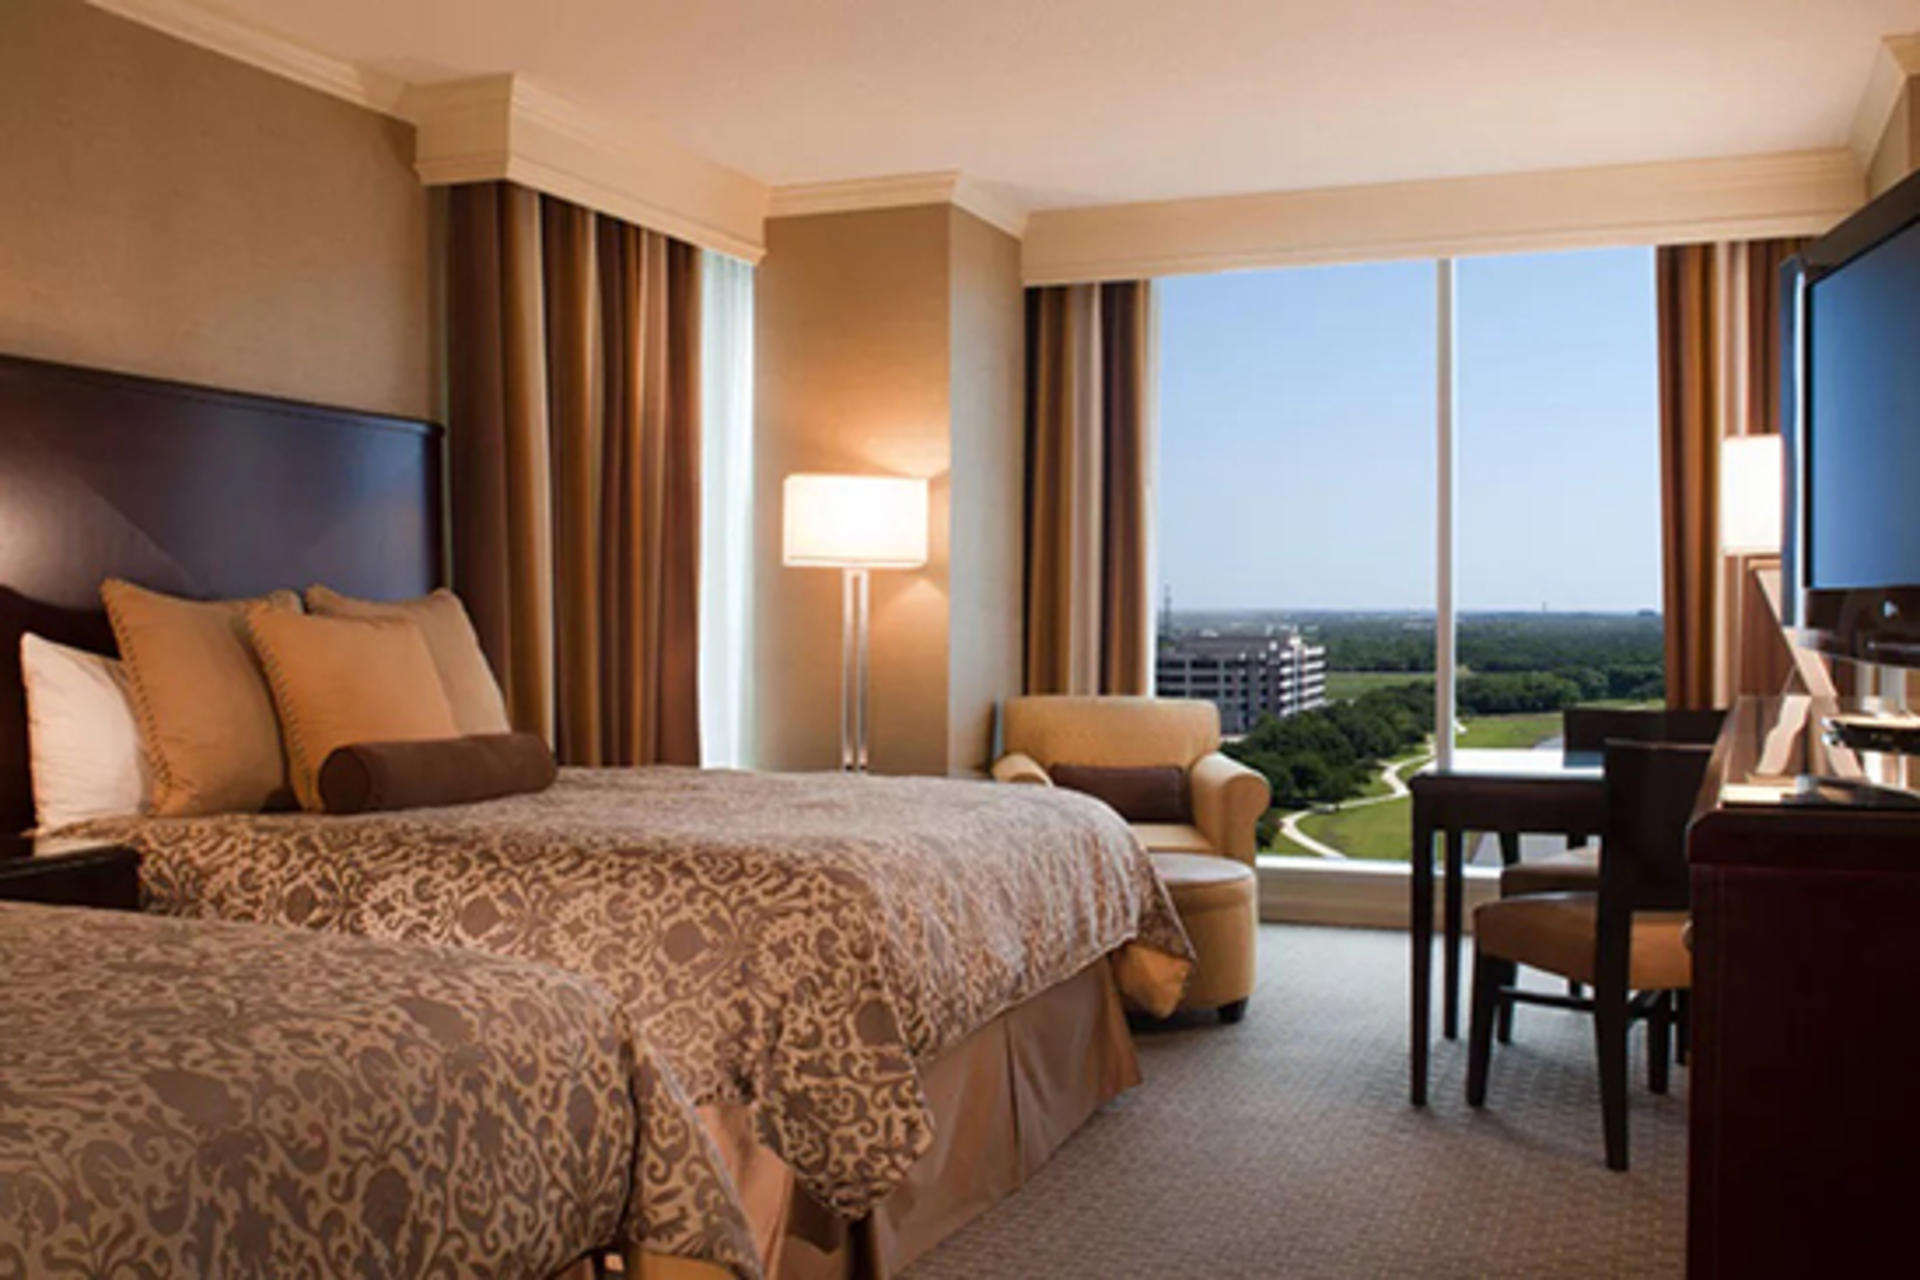 west park chat rooms Search and compare the best hotel deals we search hundreds of sites, so you get the lowest prices.